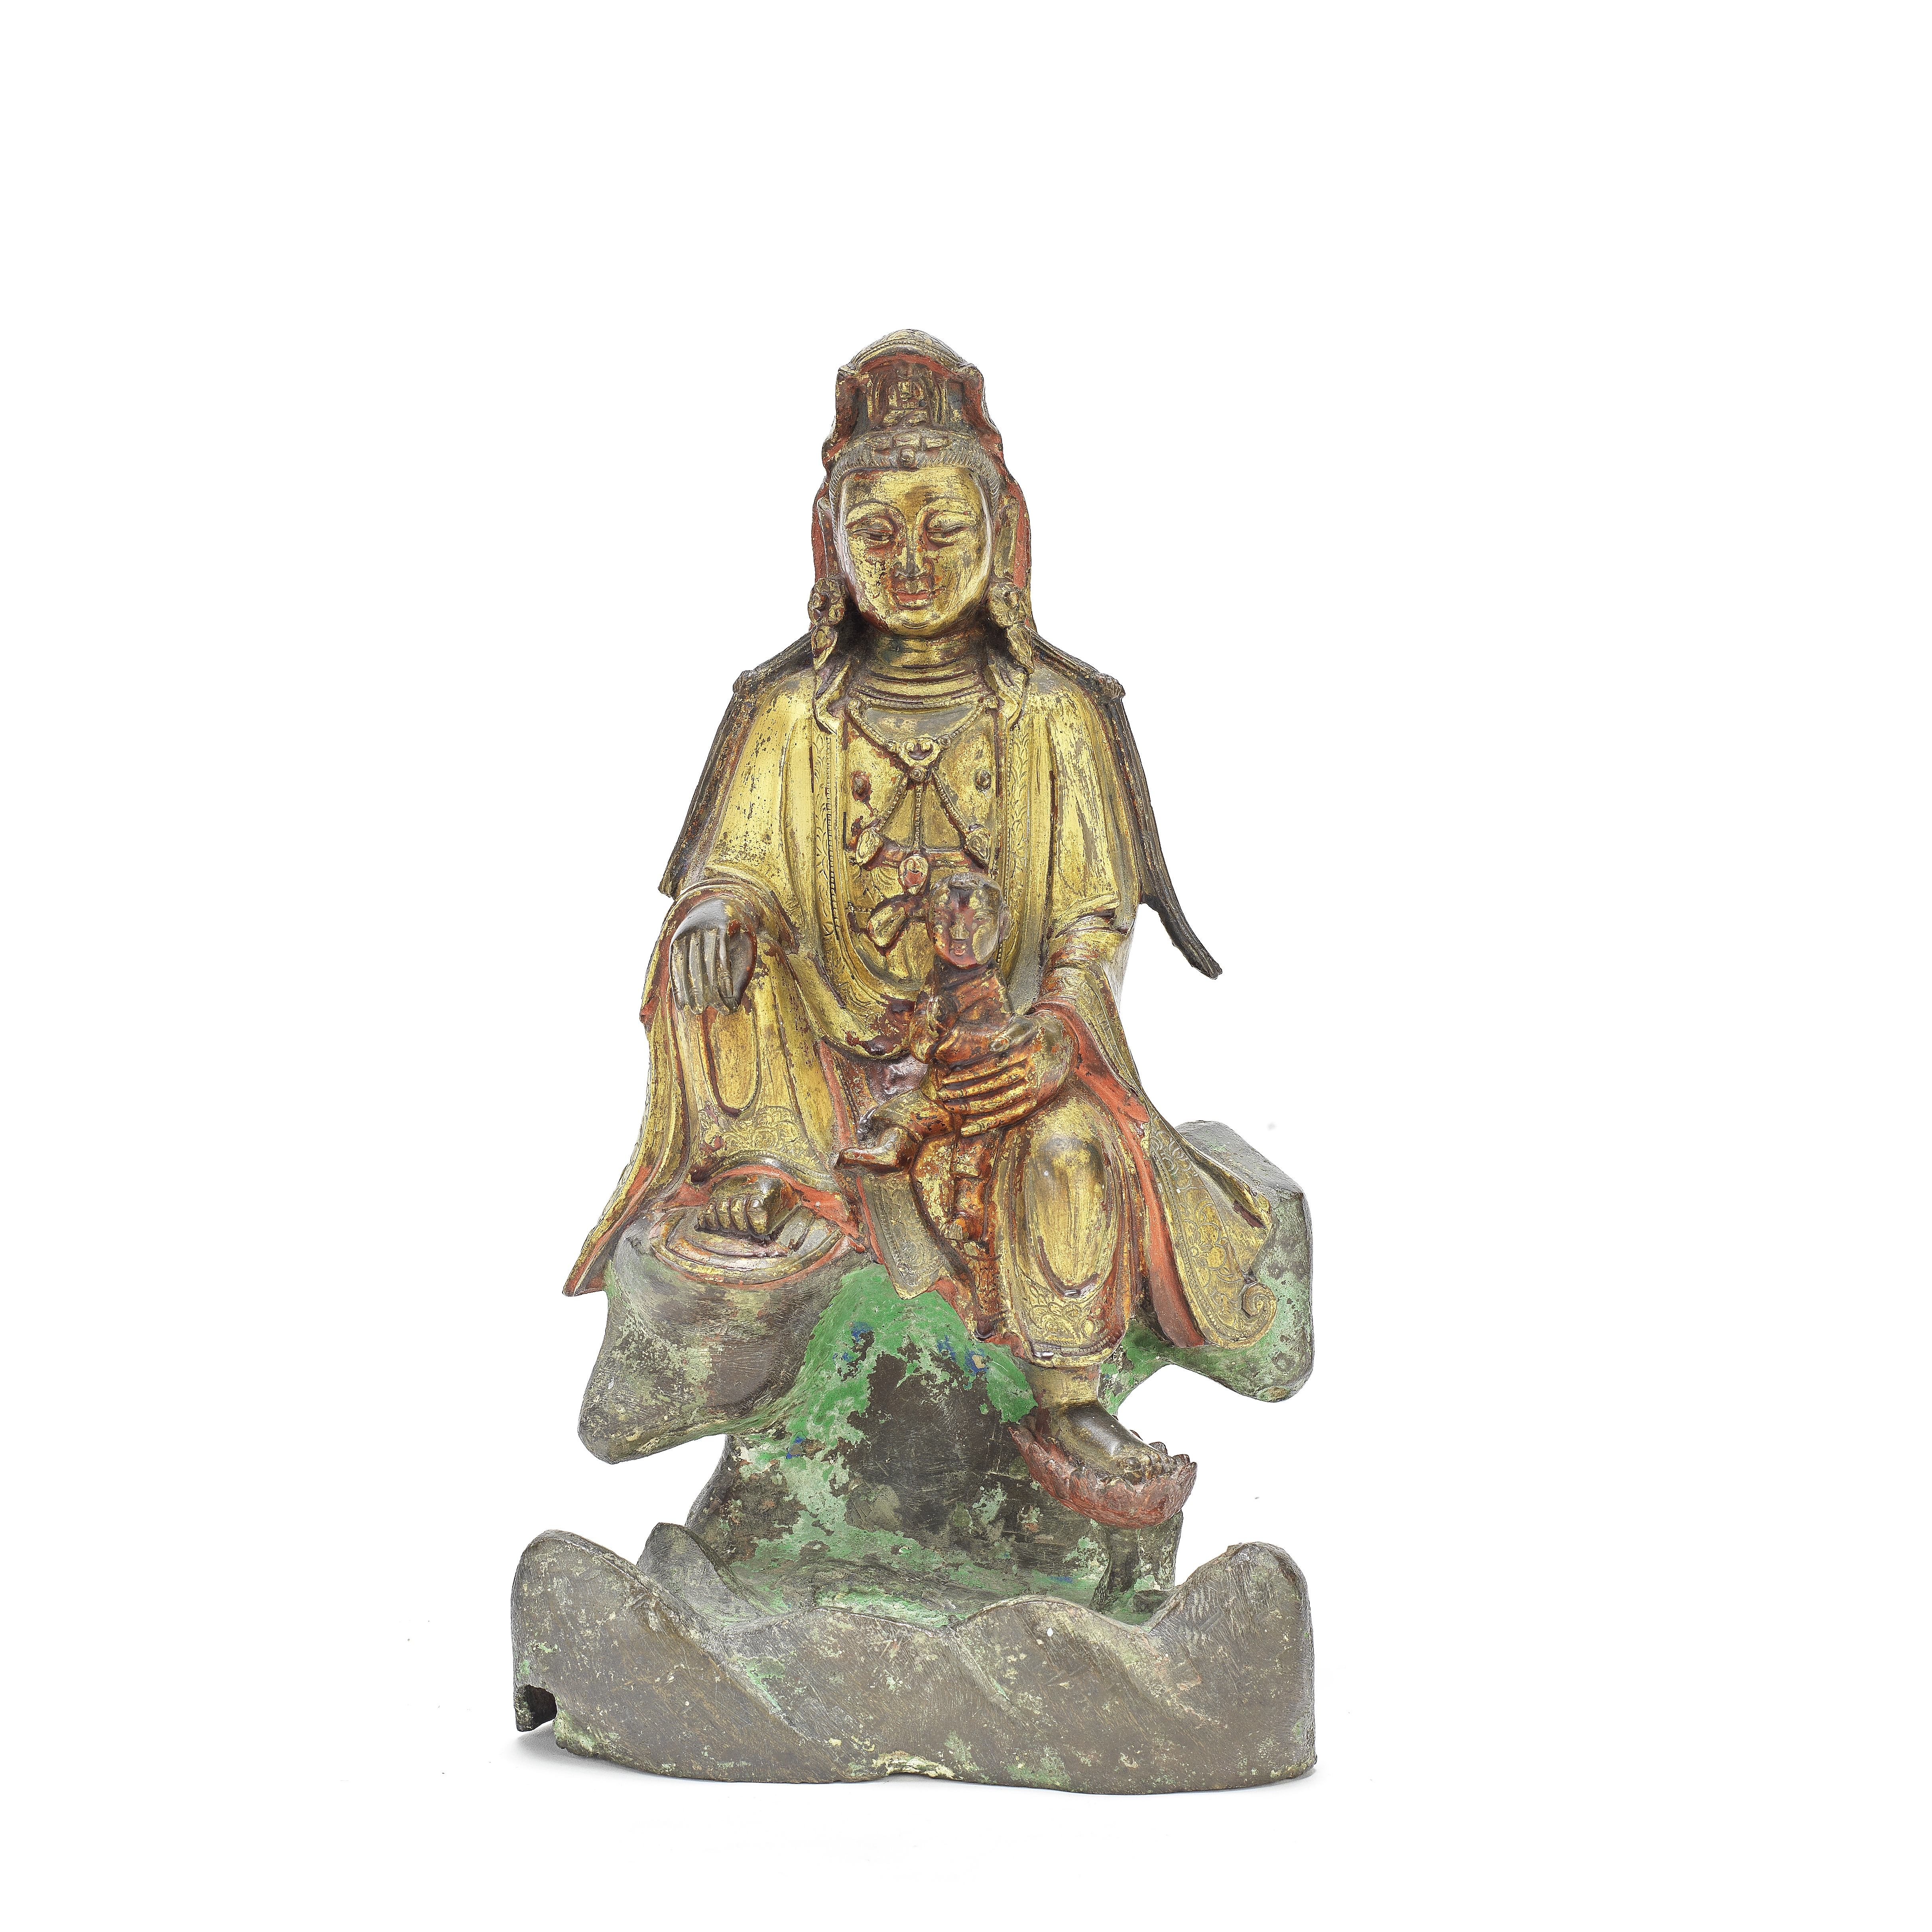 A GILT AND LACQUERED BRONZE FIGURE OF GUANYIN Ming Dynasty or later